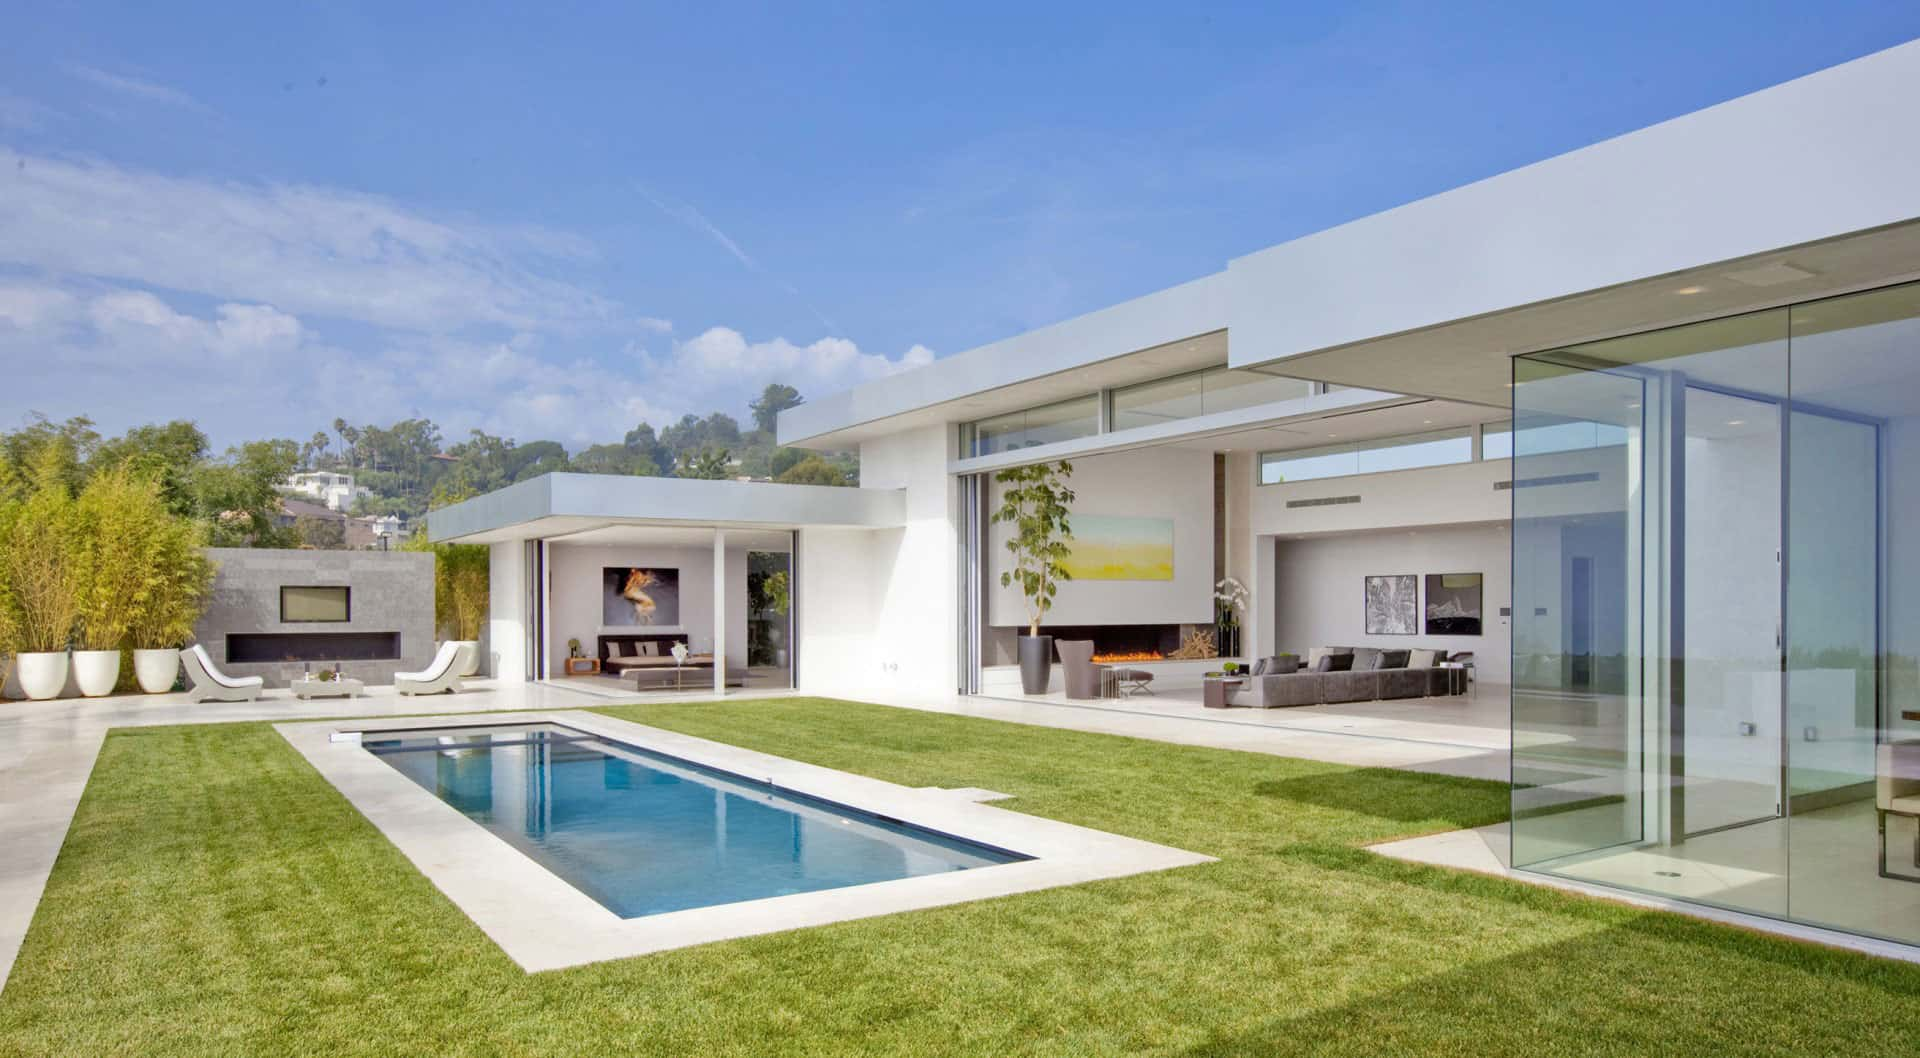 70s home transformed into modern beverly hills masterpiece for Contemporary mansions